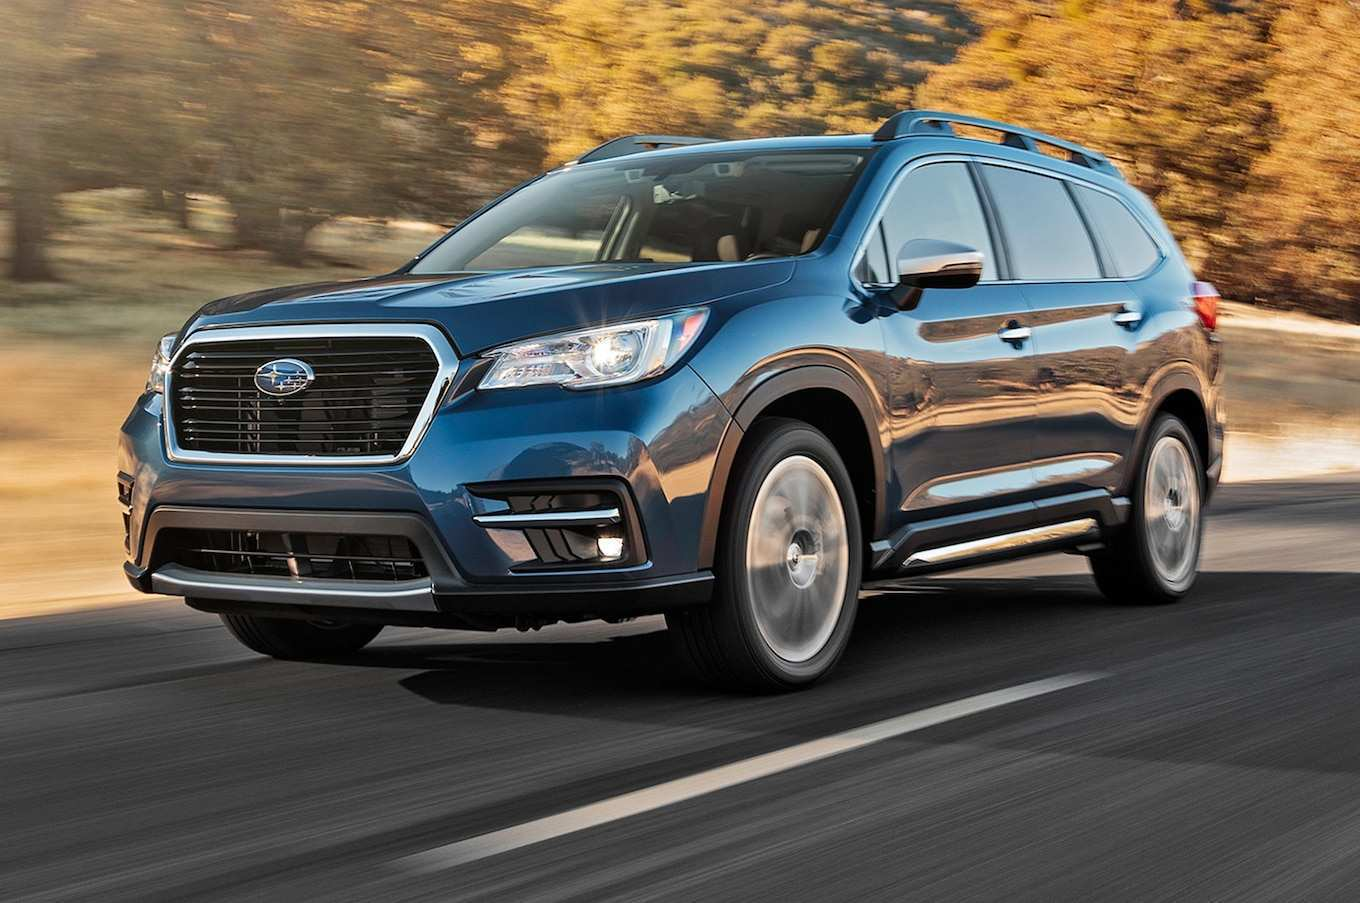 67 New 2019 Subaru Suv Exterior And Interior